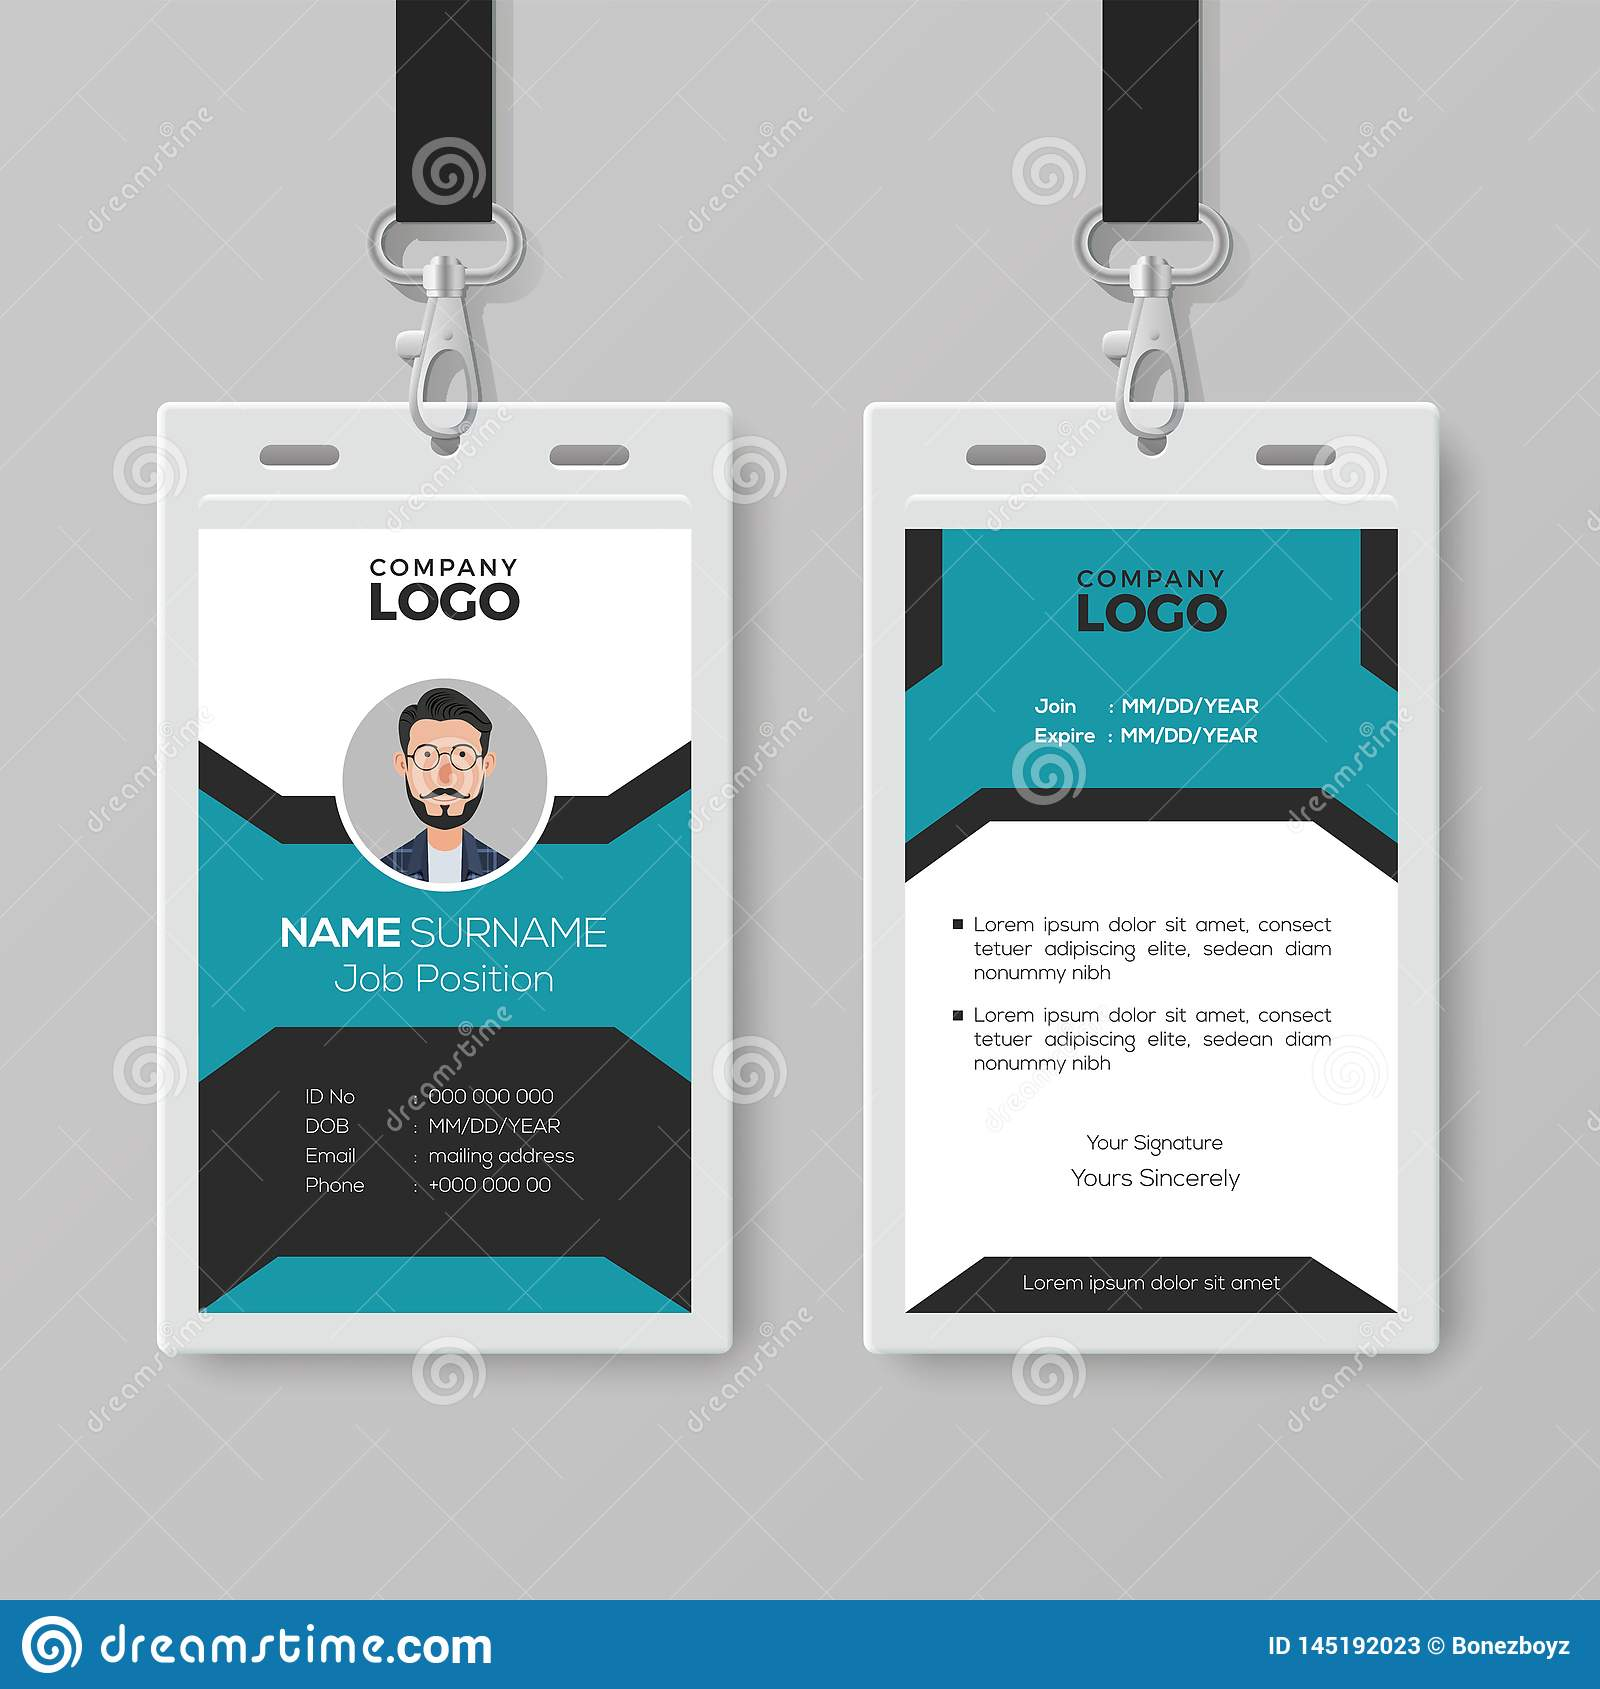 Creative Employee Id Card Template Stock Vector with ...